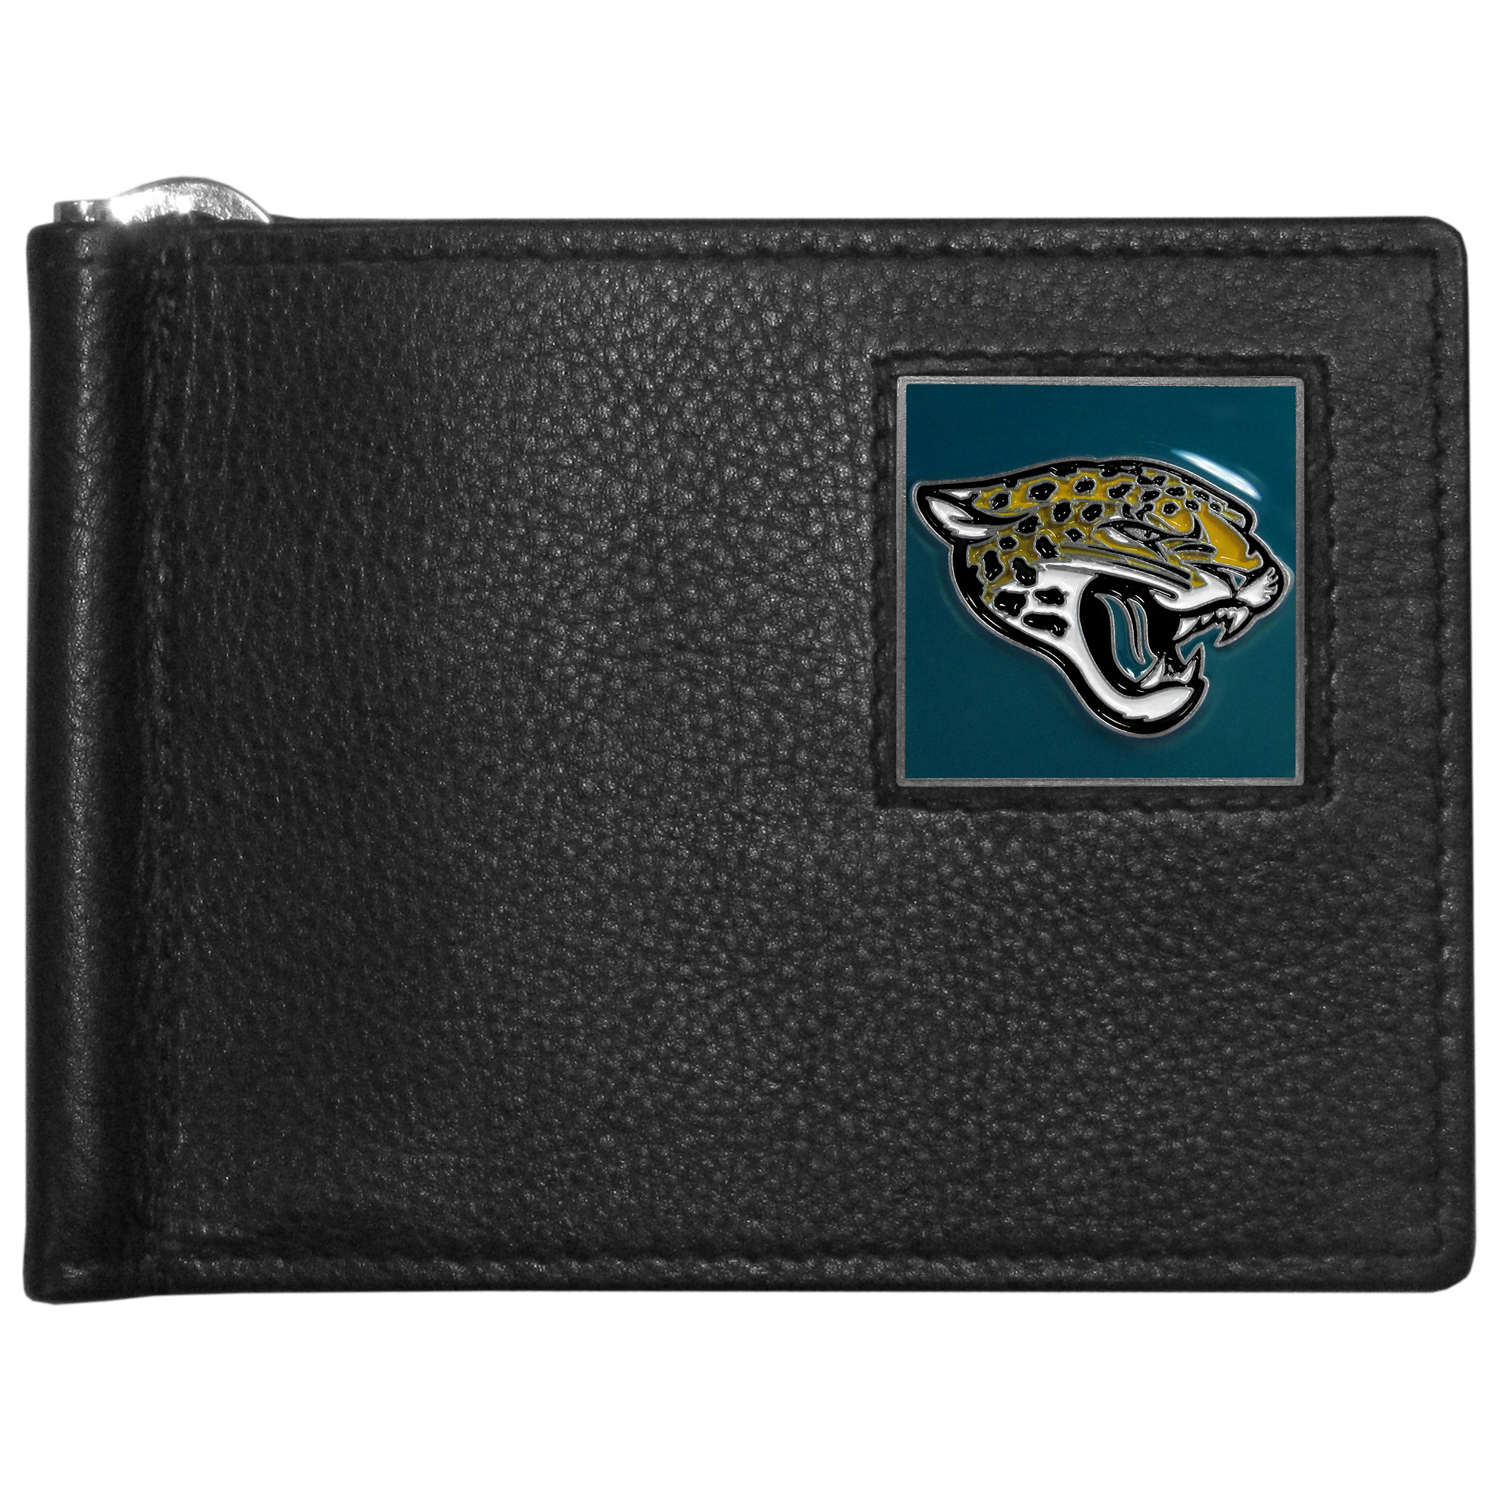 Jacksonville Jaguars Leather Bill Clip Wallet - This cool new style wallet features an inner, metal bill clip that lips up for easy access. The super slim wallet holds tons of stuff with ample pockets, credit card slots & windowed ID slot.  The wallet is made of genuine fine grain leather and it finished with a metal Jacksonville Jaguars emblem. The wallet is shipped in gift box packaging.